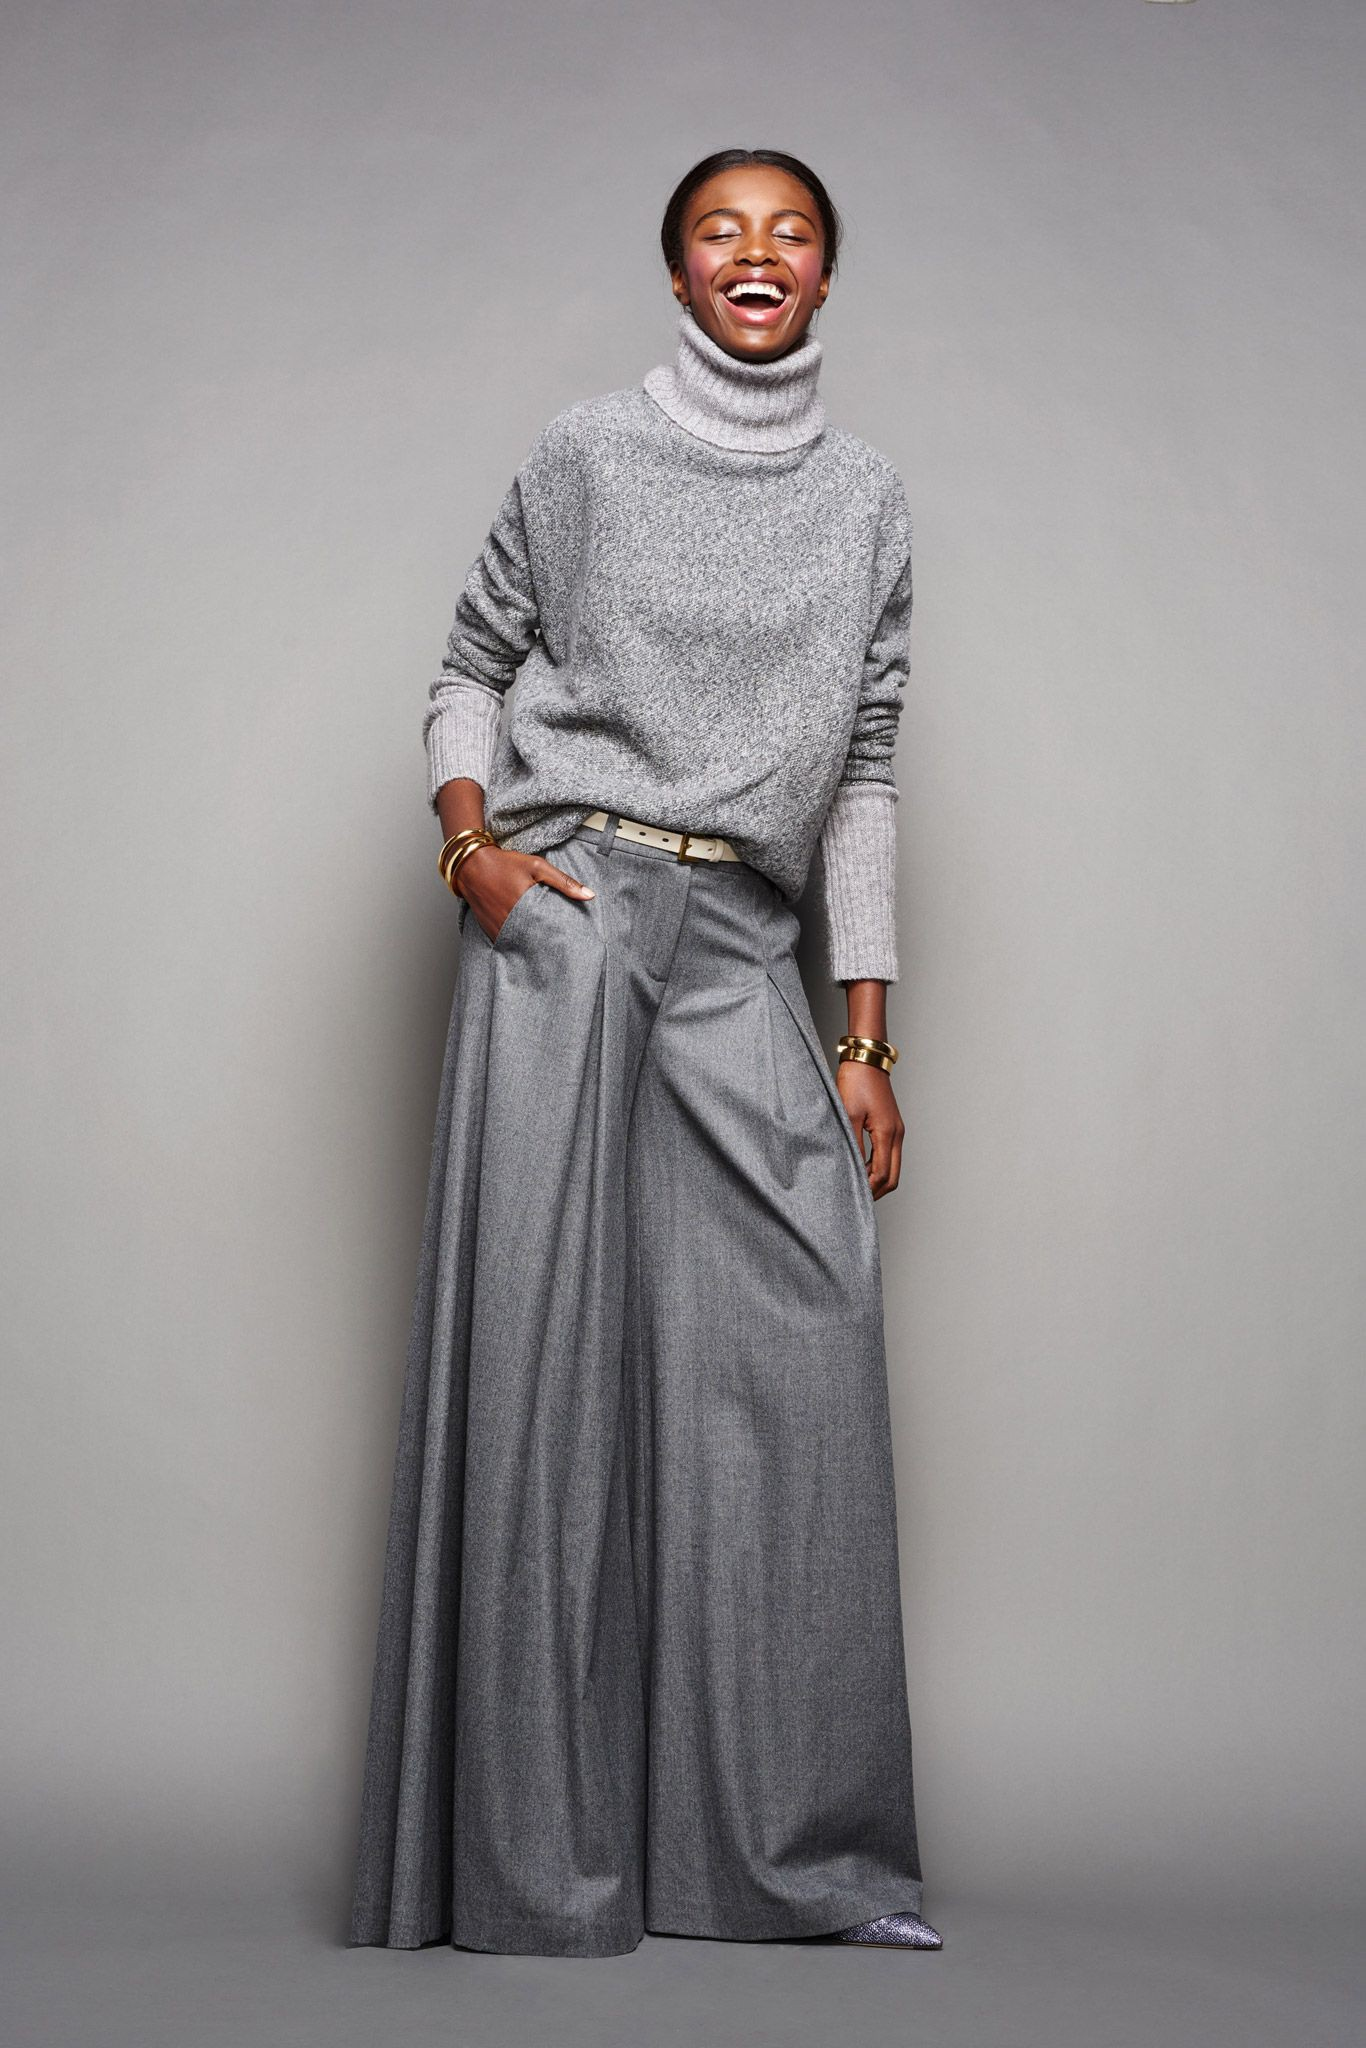 J crew gray pants ready to wear, fashion model